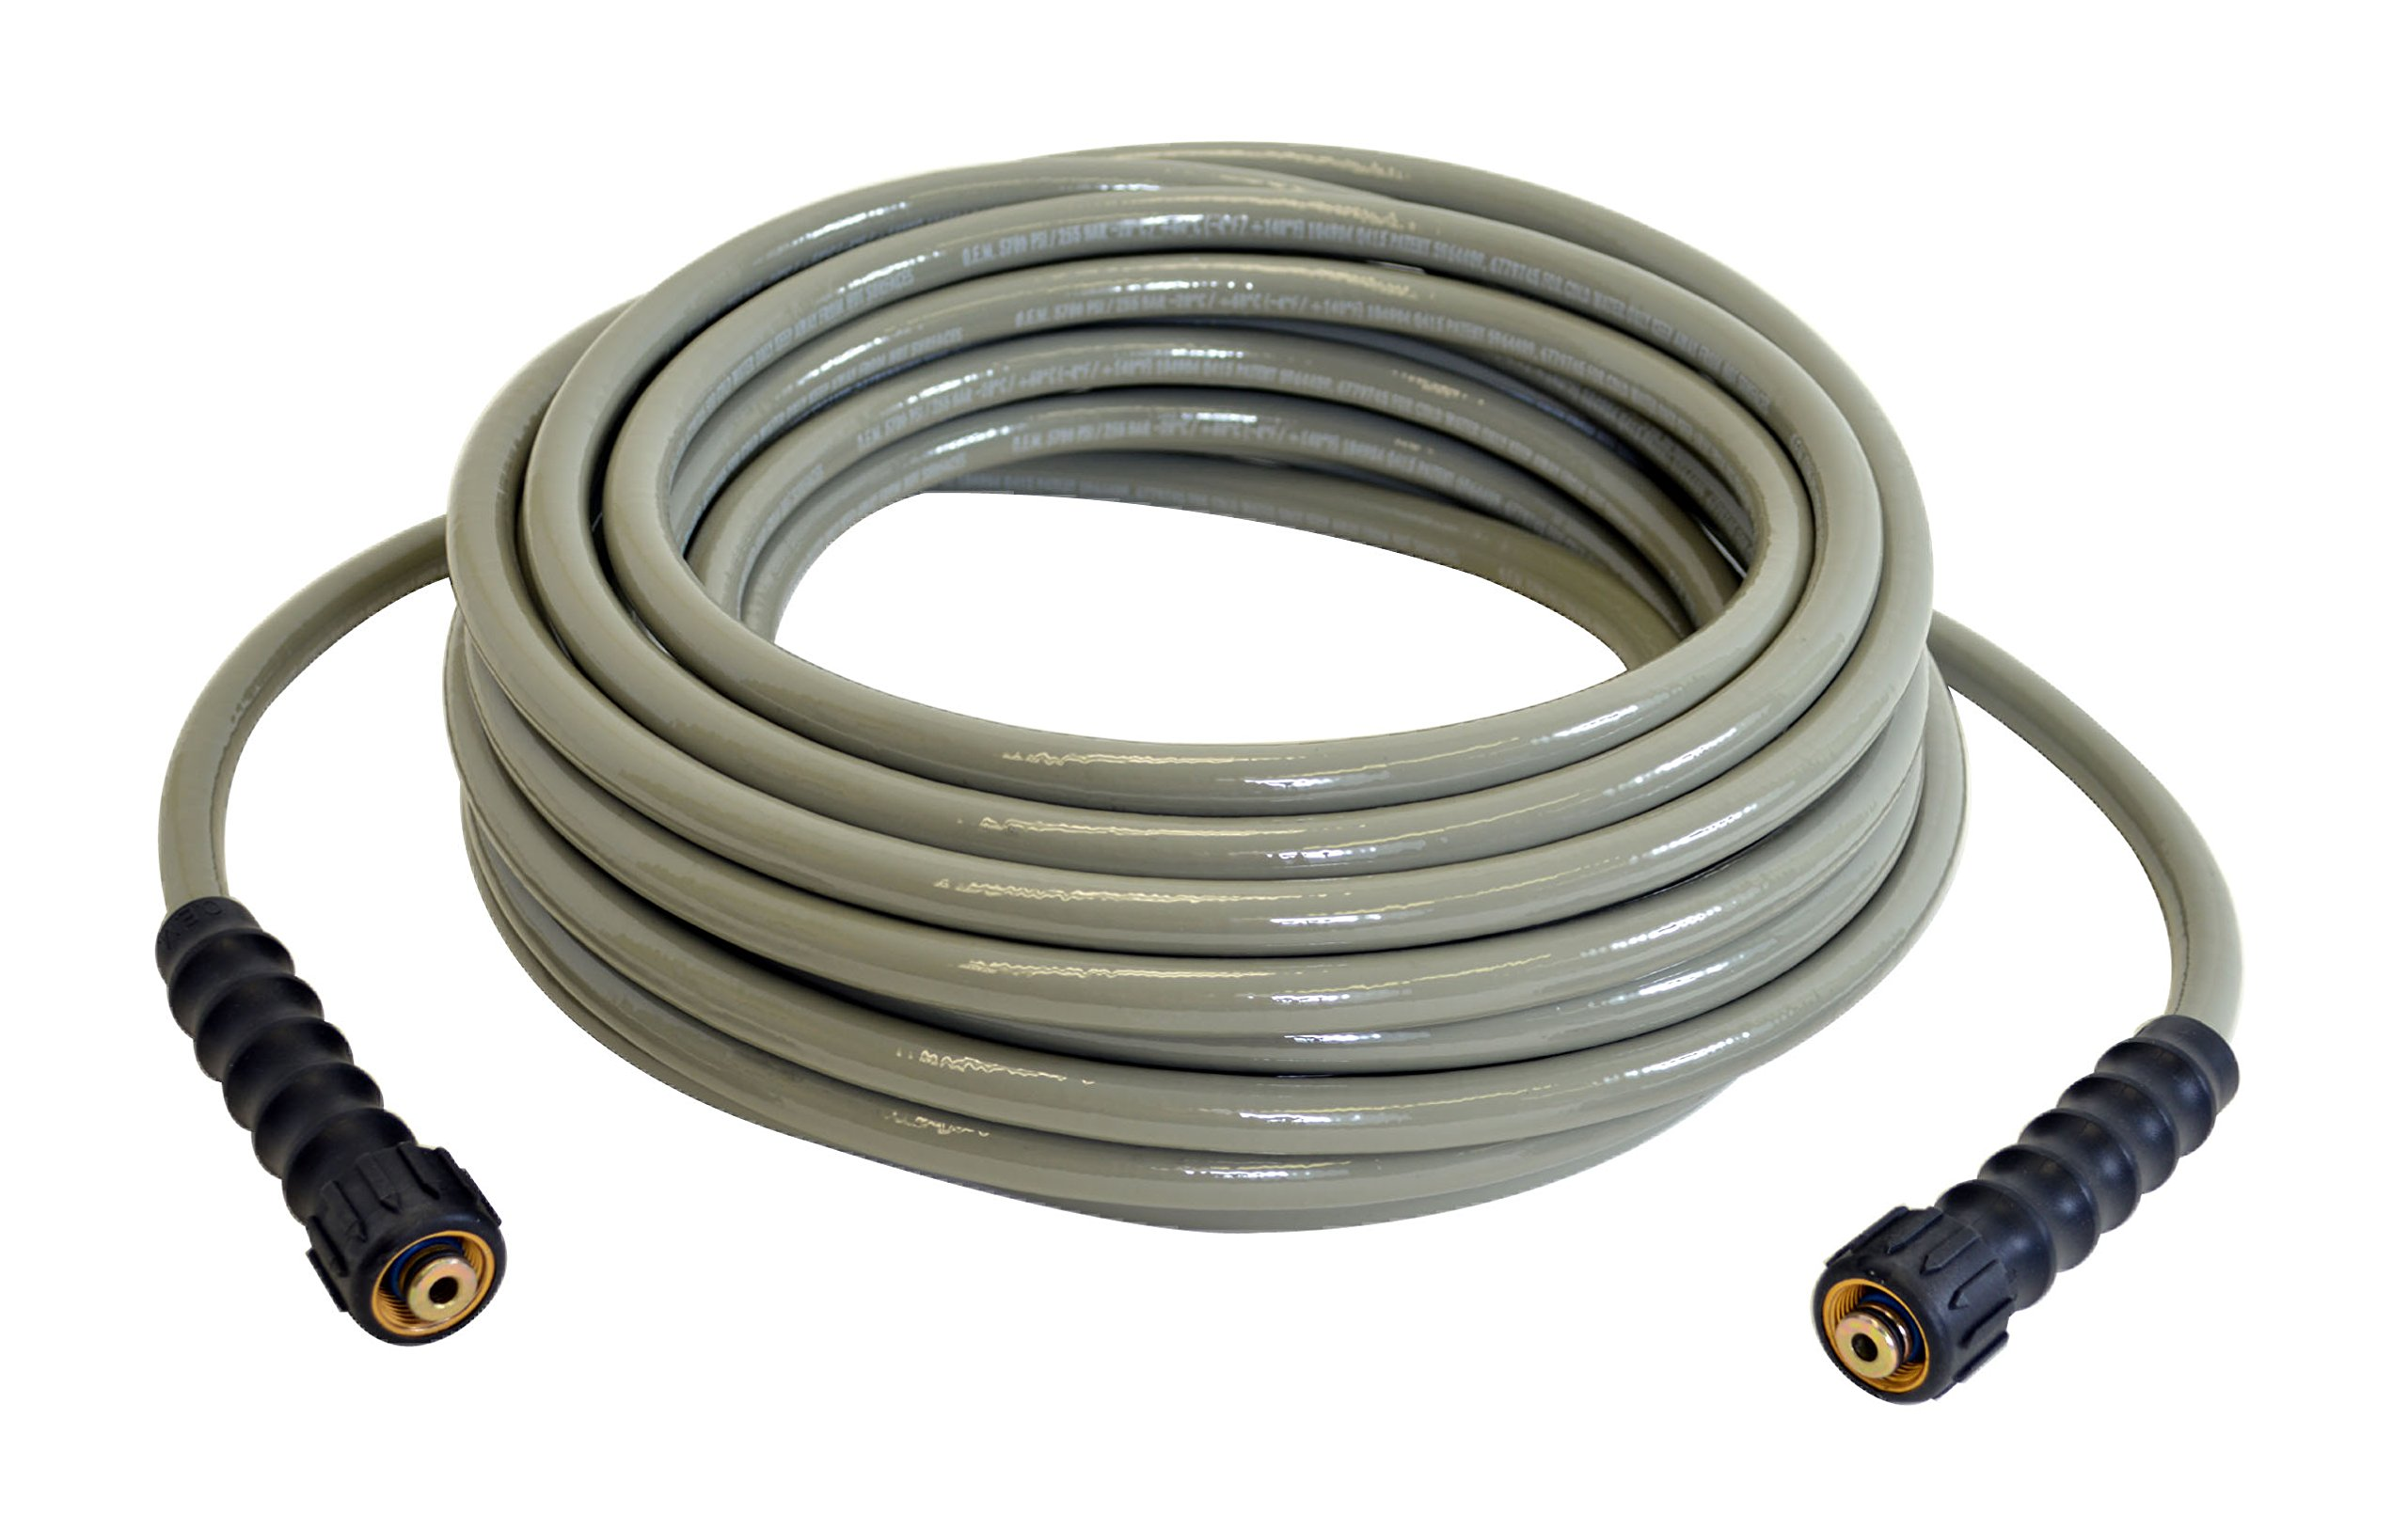 SIMPSON Cleaning MorFlex 40226- 5/16''x 50' 3700 PSI Cold Water Replacement/ Extension Hose by Simpson Cleaning